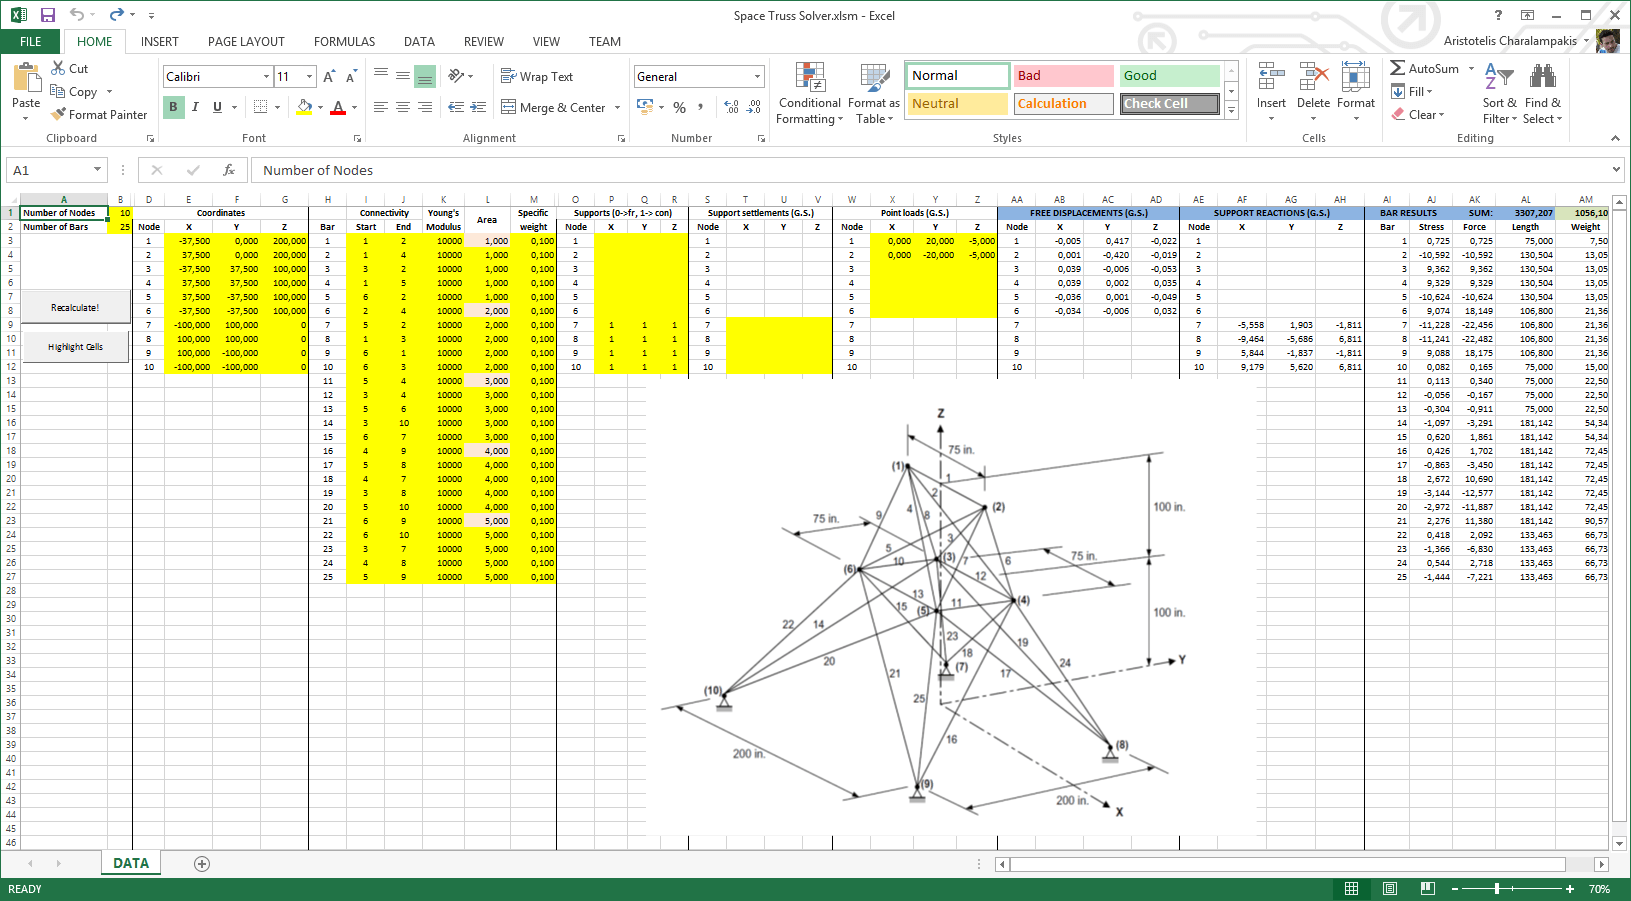 Space truss solver with Microsoft Excel and VBA